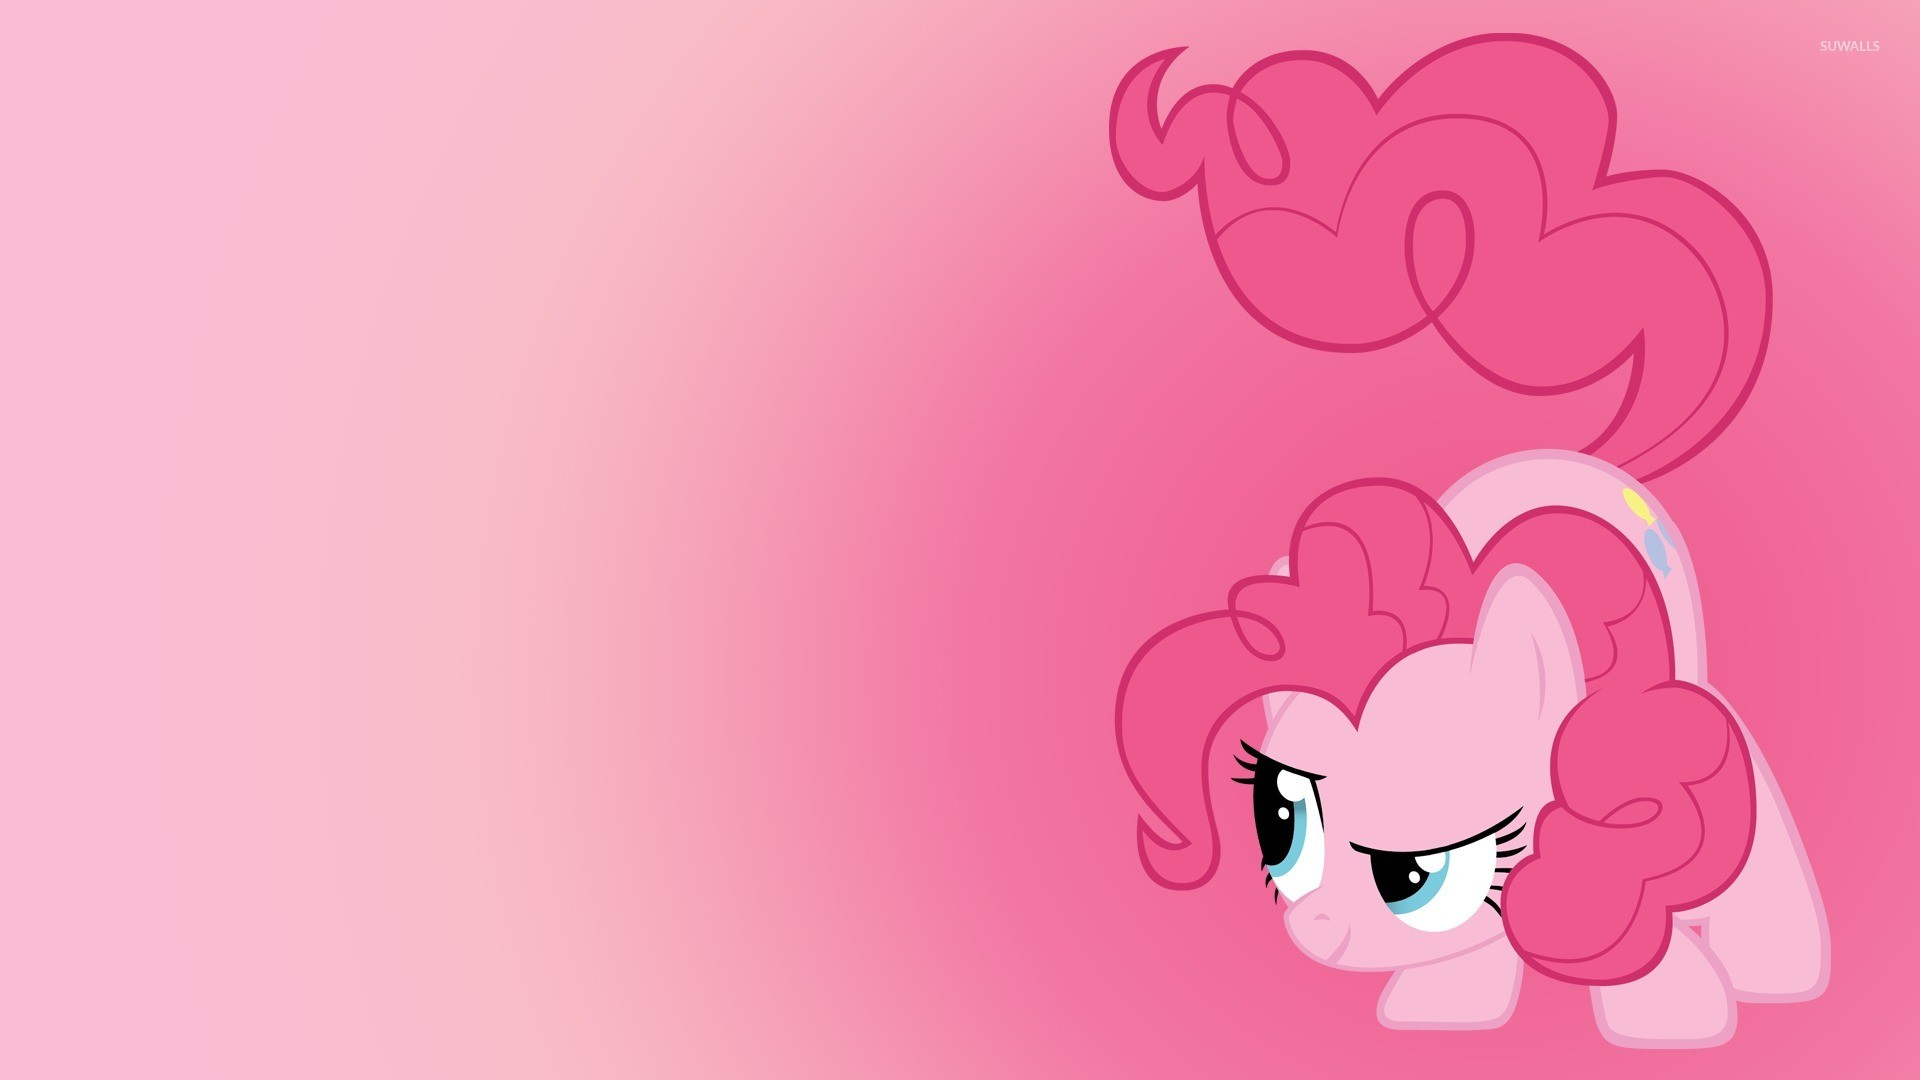 Cute Baby Hug Wallpapers My Little Pony Live Wallpaper 80 Images